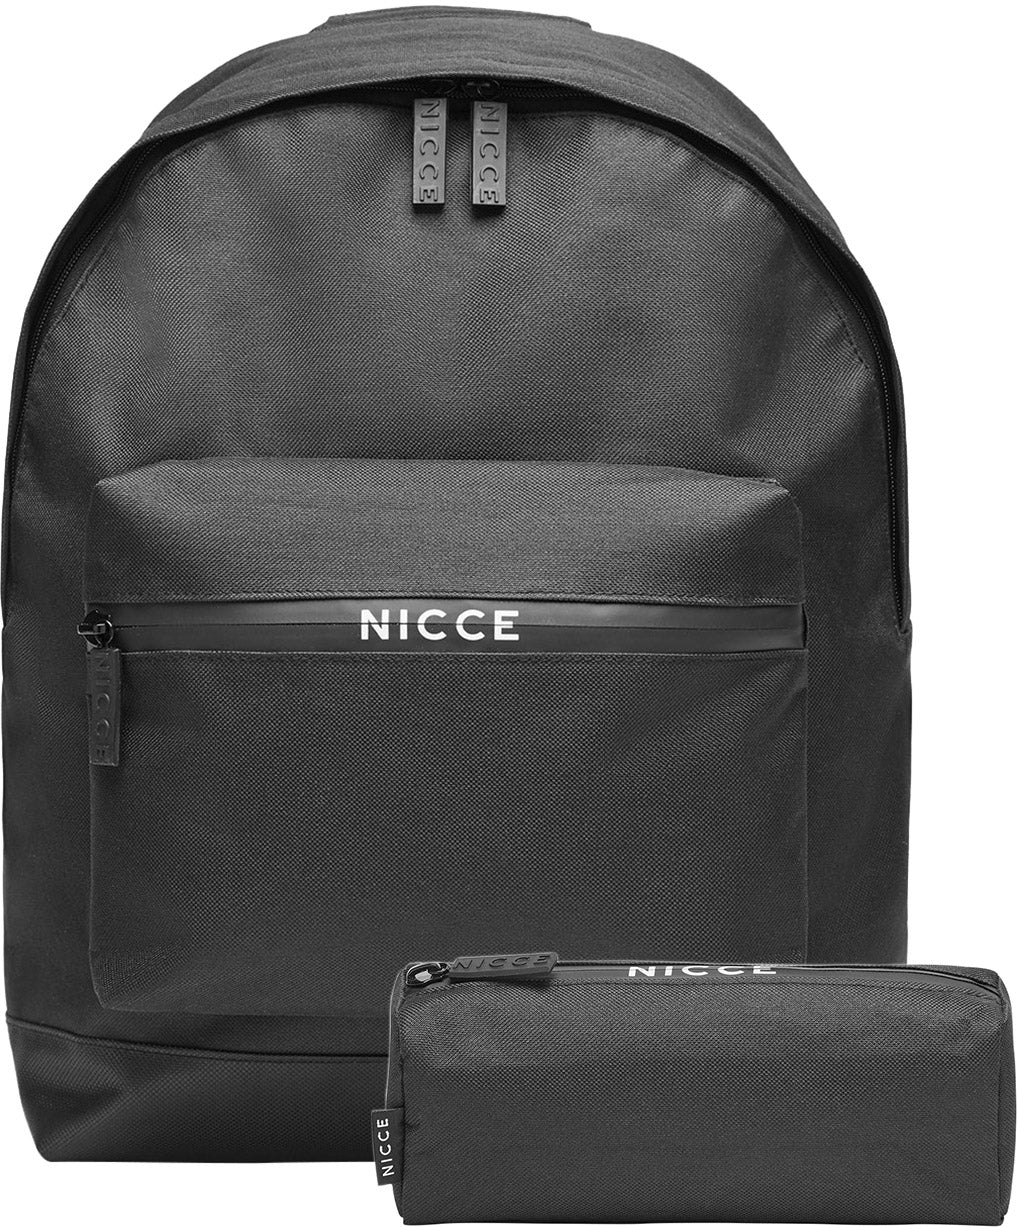 NICCE-Andel-Backpack-Bag-And-Pencil-Case-Set-Black